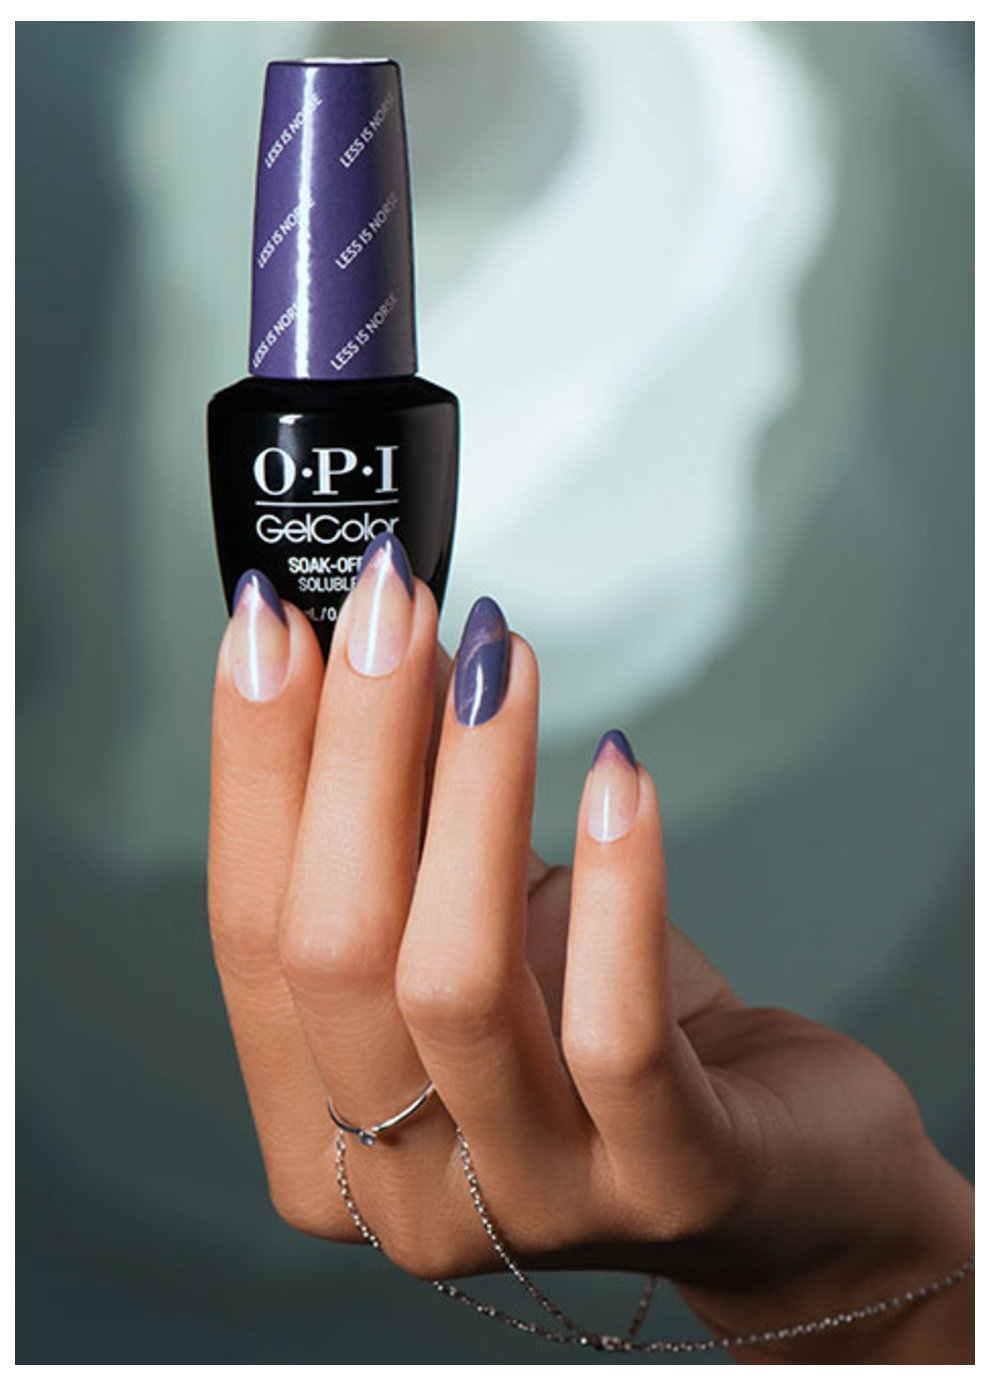 Nail art gallery opi opi iceland collection gelcolor nail art meet me in the blue lagoon prinsesfo Gallery